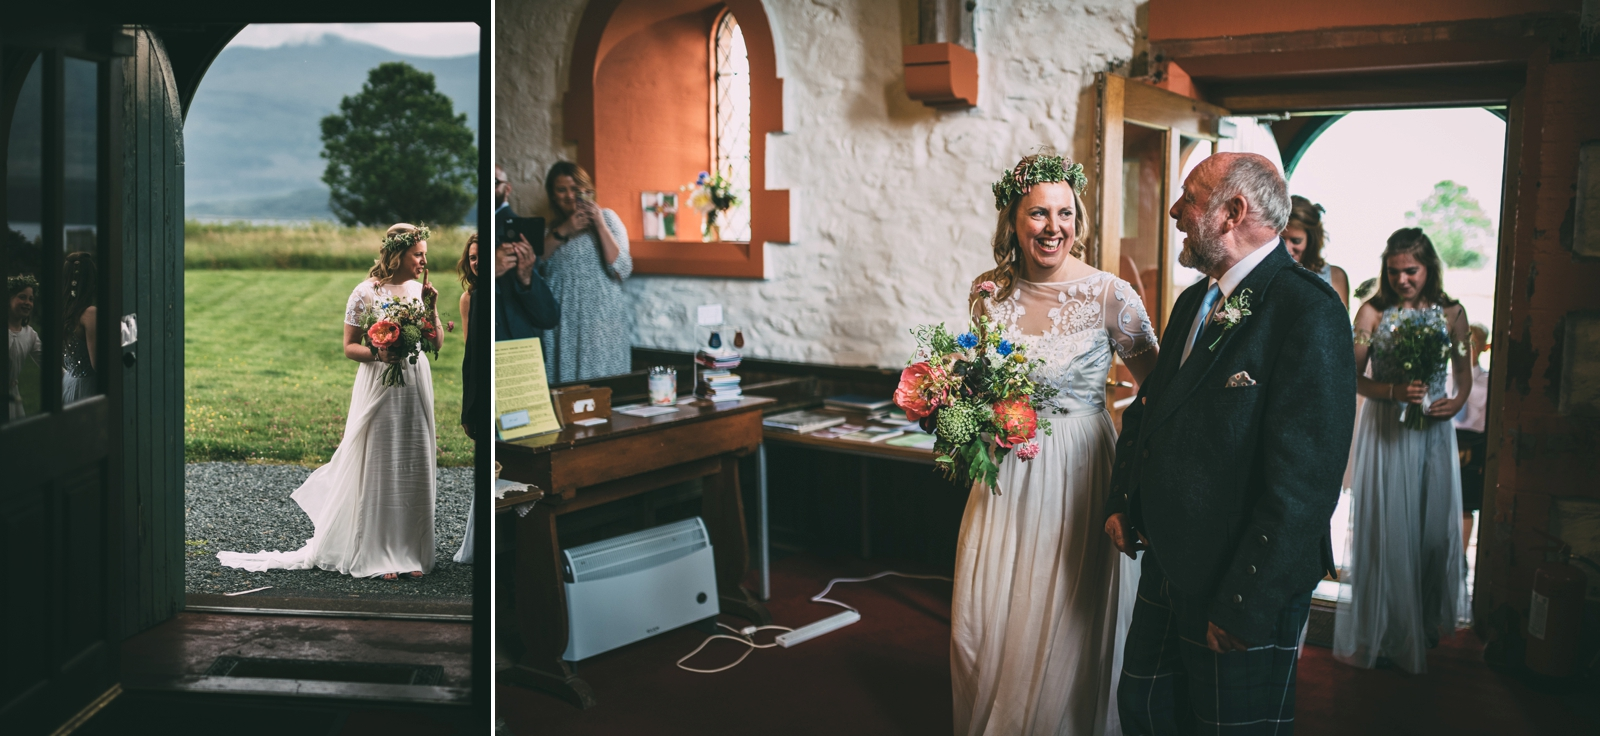 Northern Aye Photography_ Fiona and Derek_ Lochaline Village Wedding 62.jpg